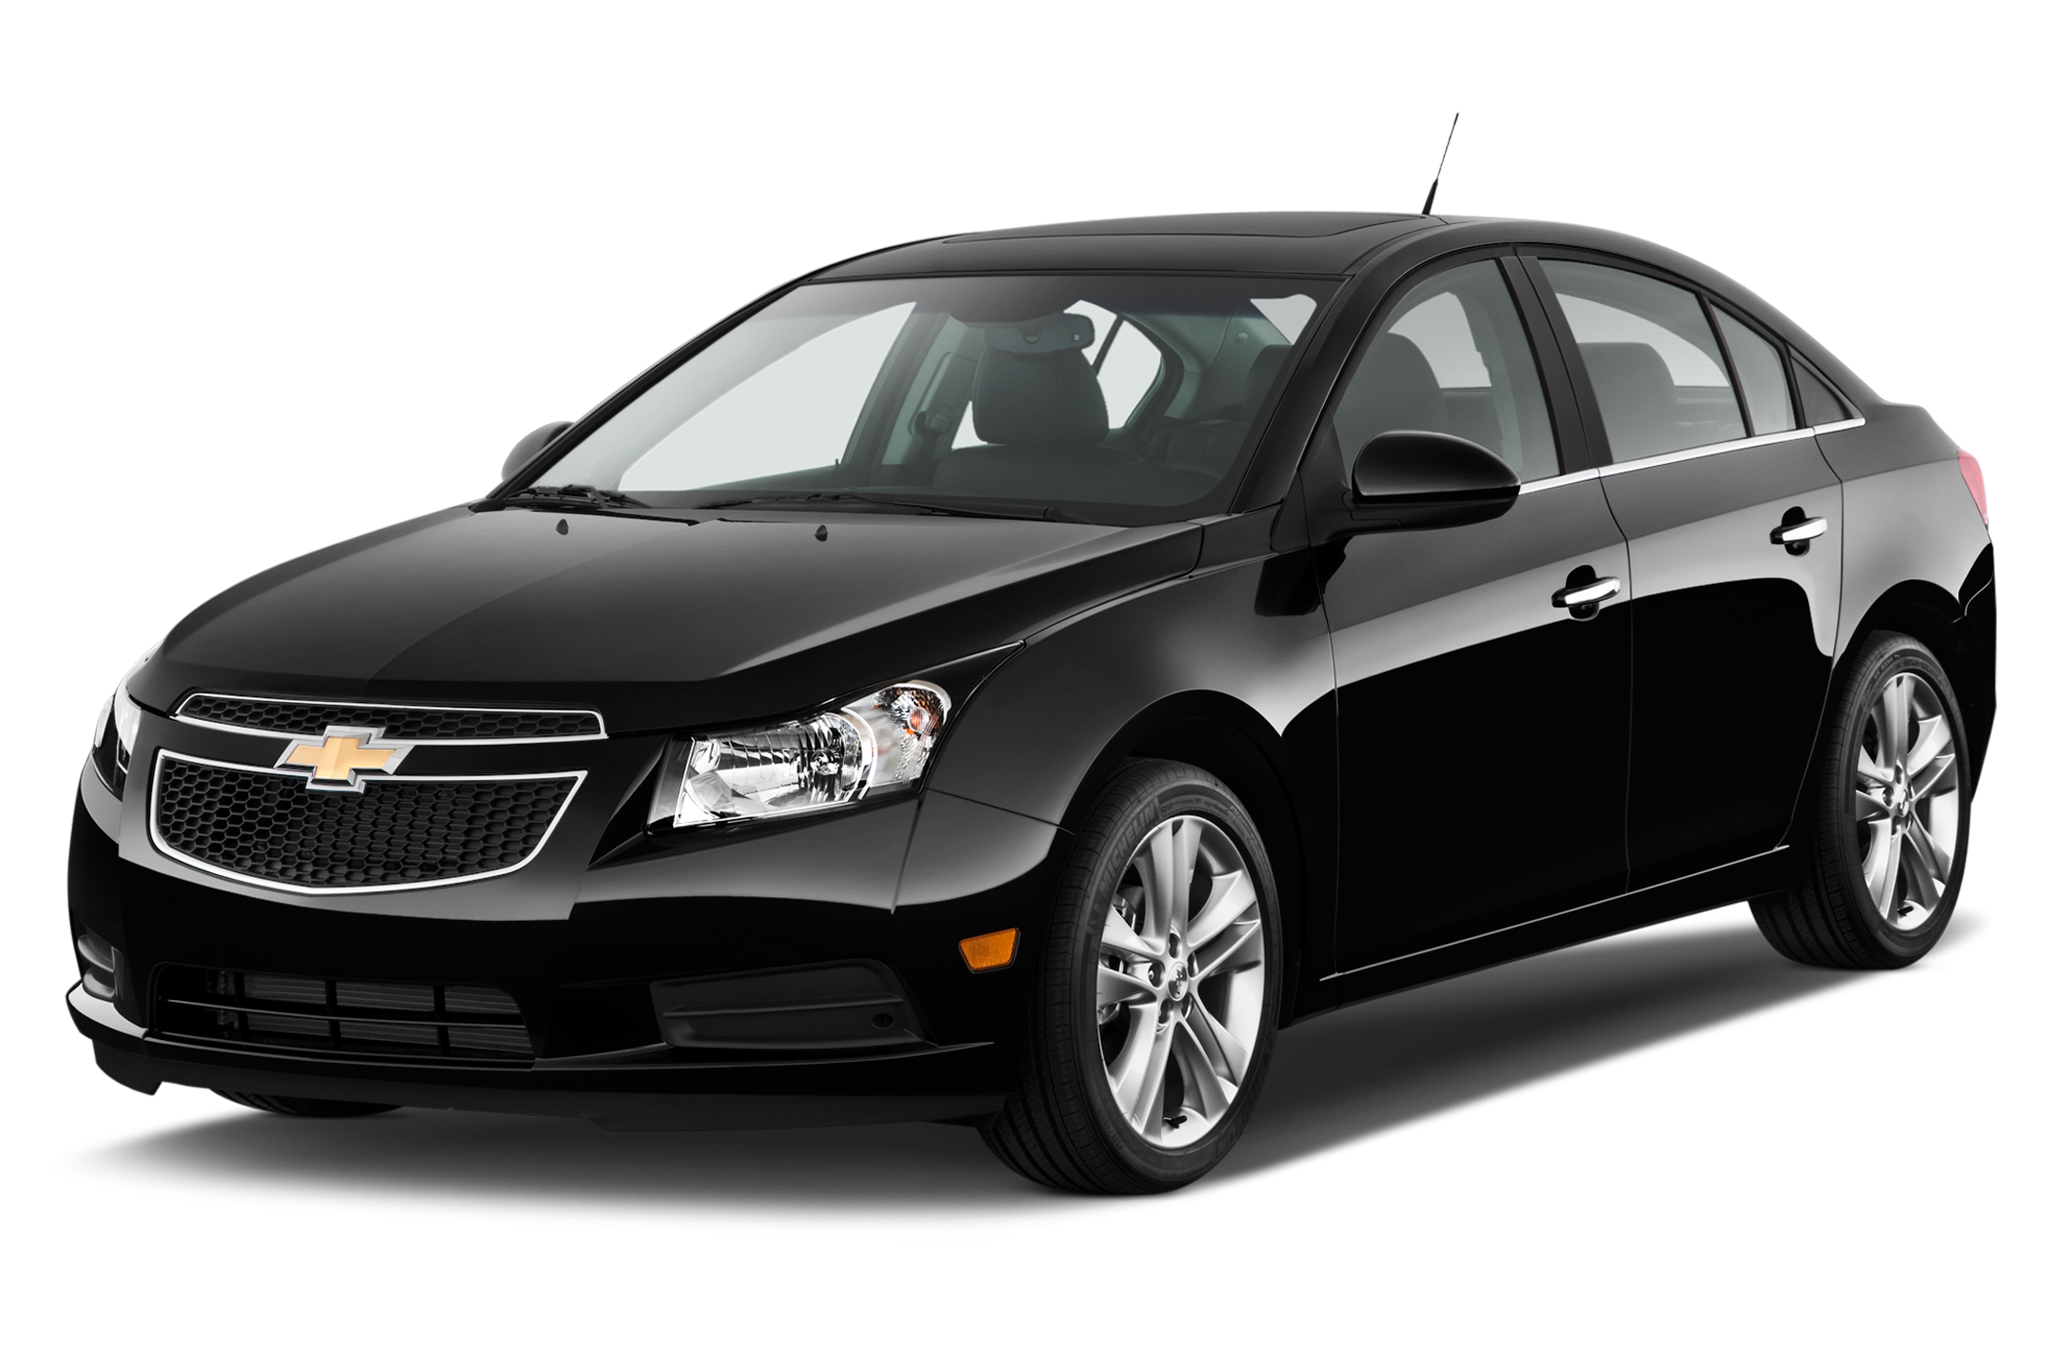 Chevrolet Cruze PNG Image